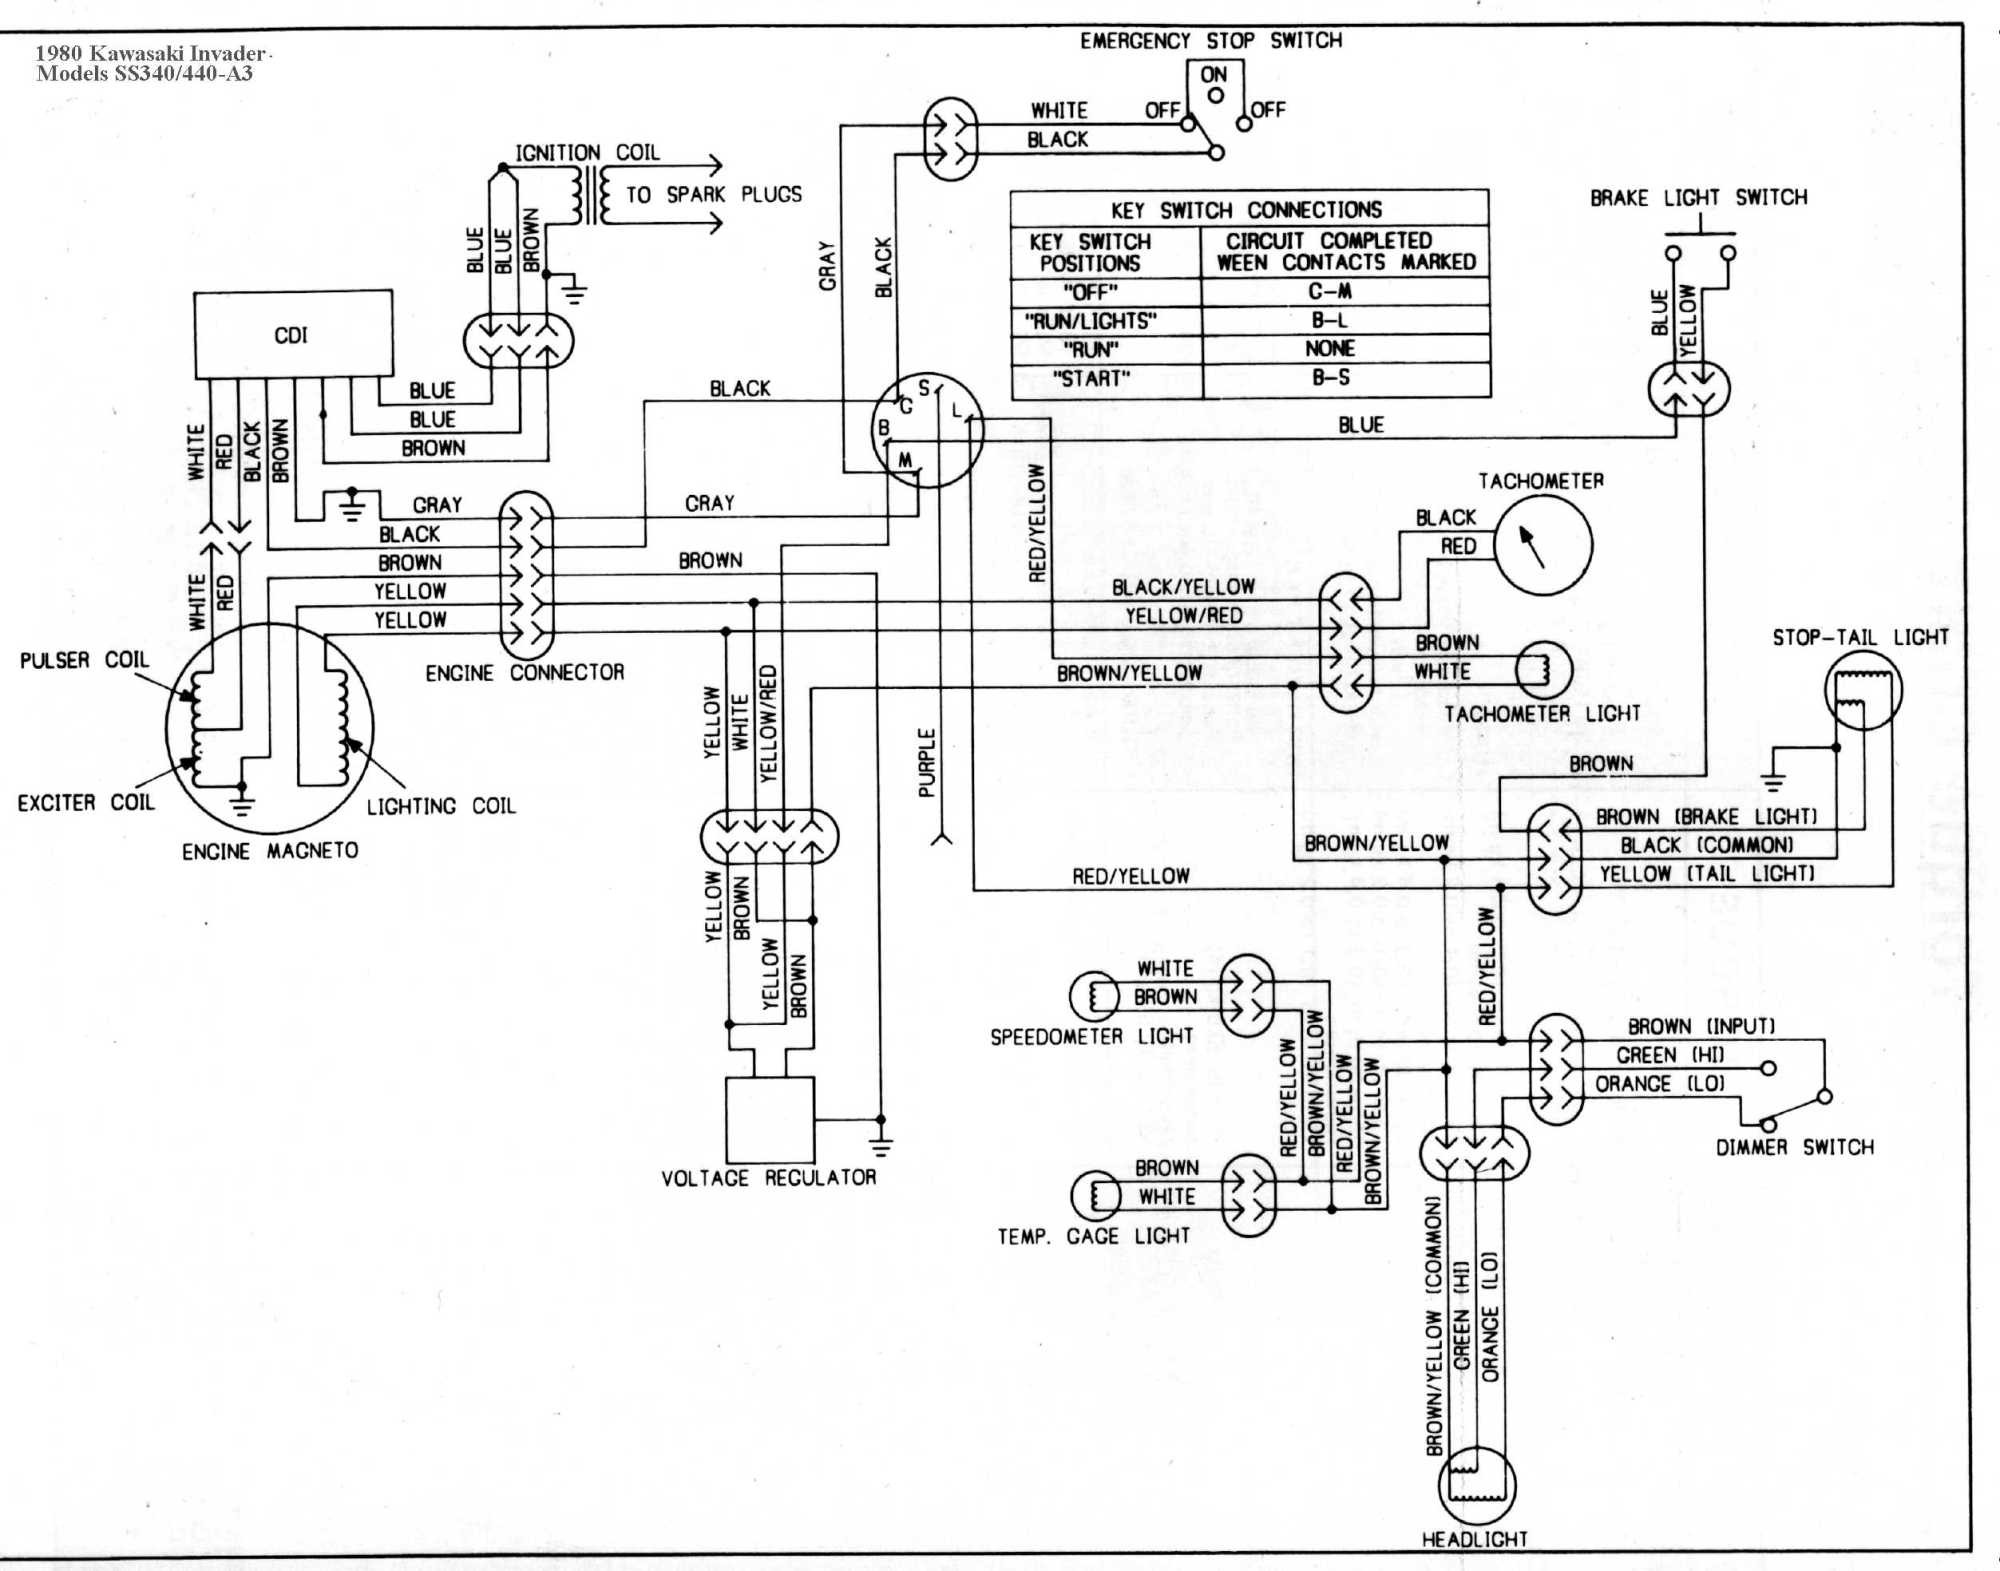 hight resolution of yamaha ss 440 wiring diagram enthusiast wiring diagrams u2022 rh rasalibre co yamaha stratoliner wiring 79